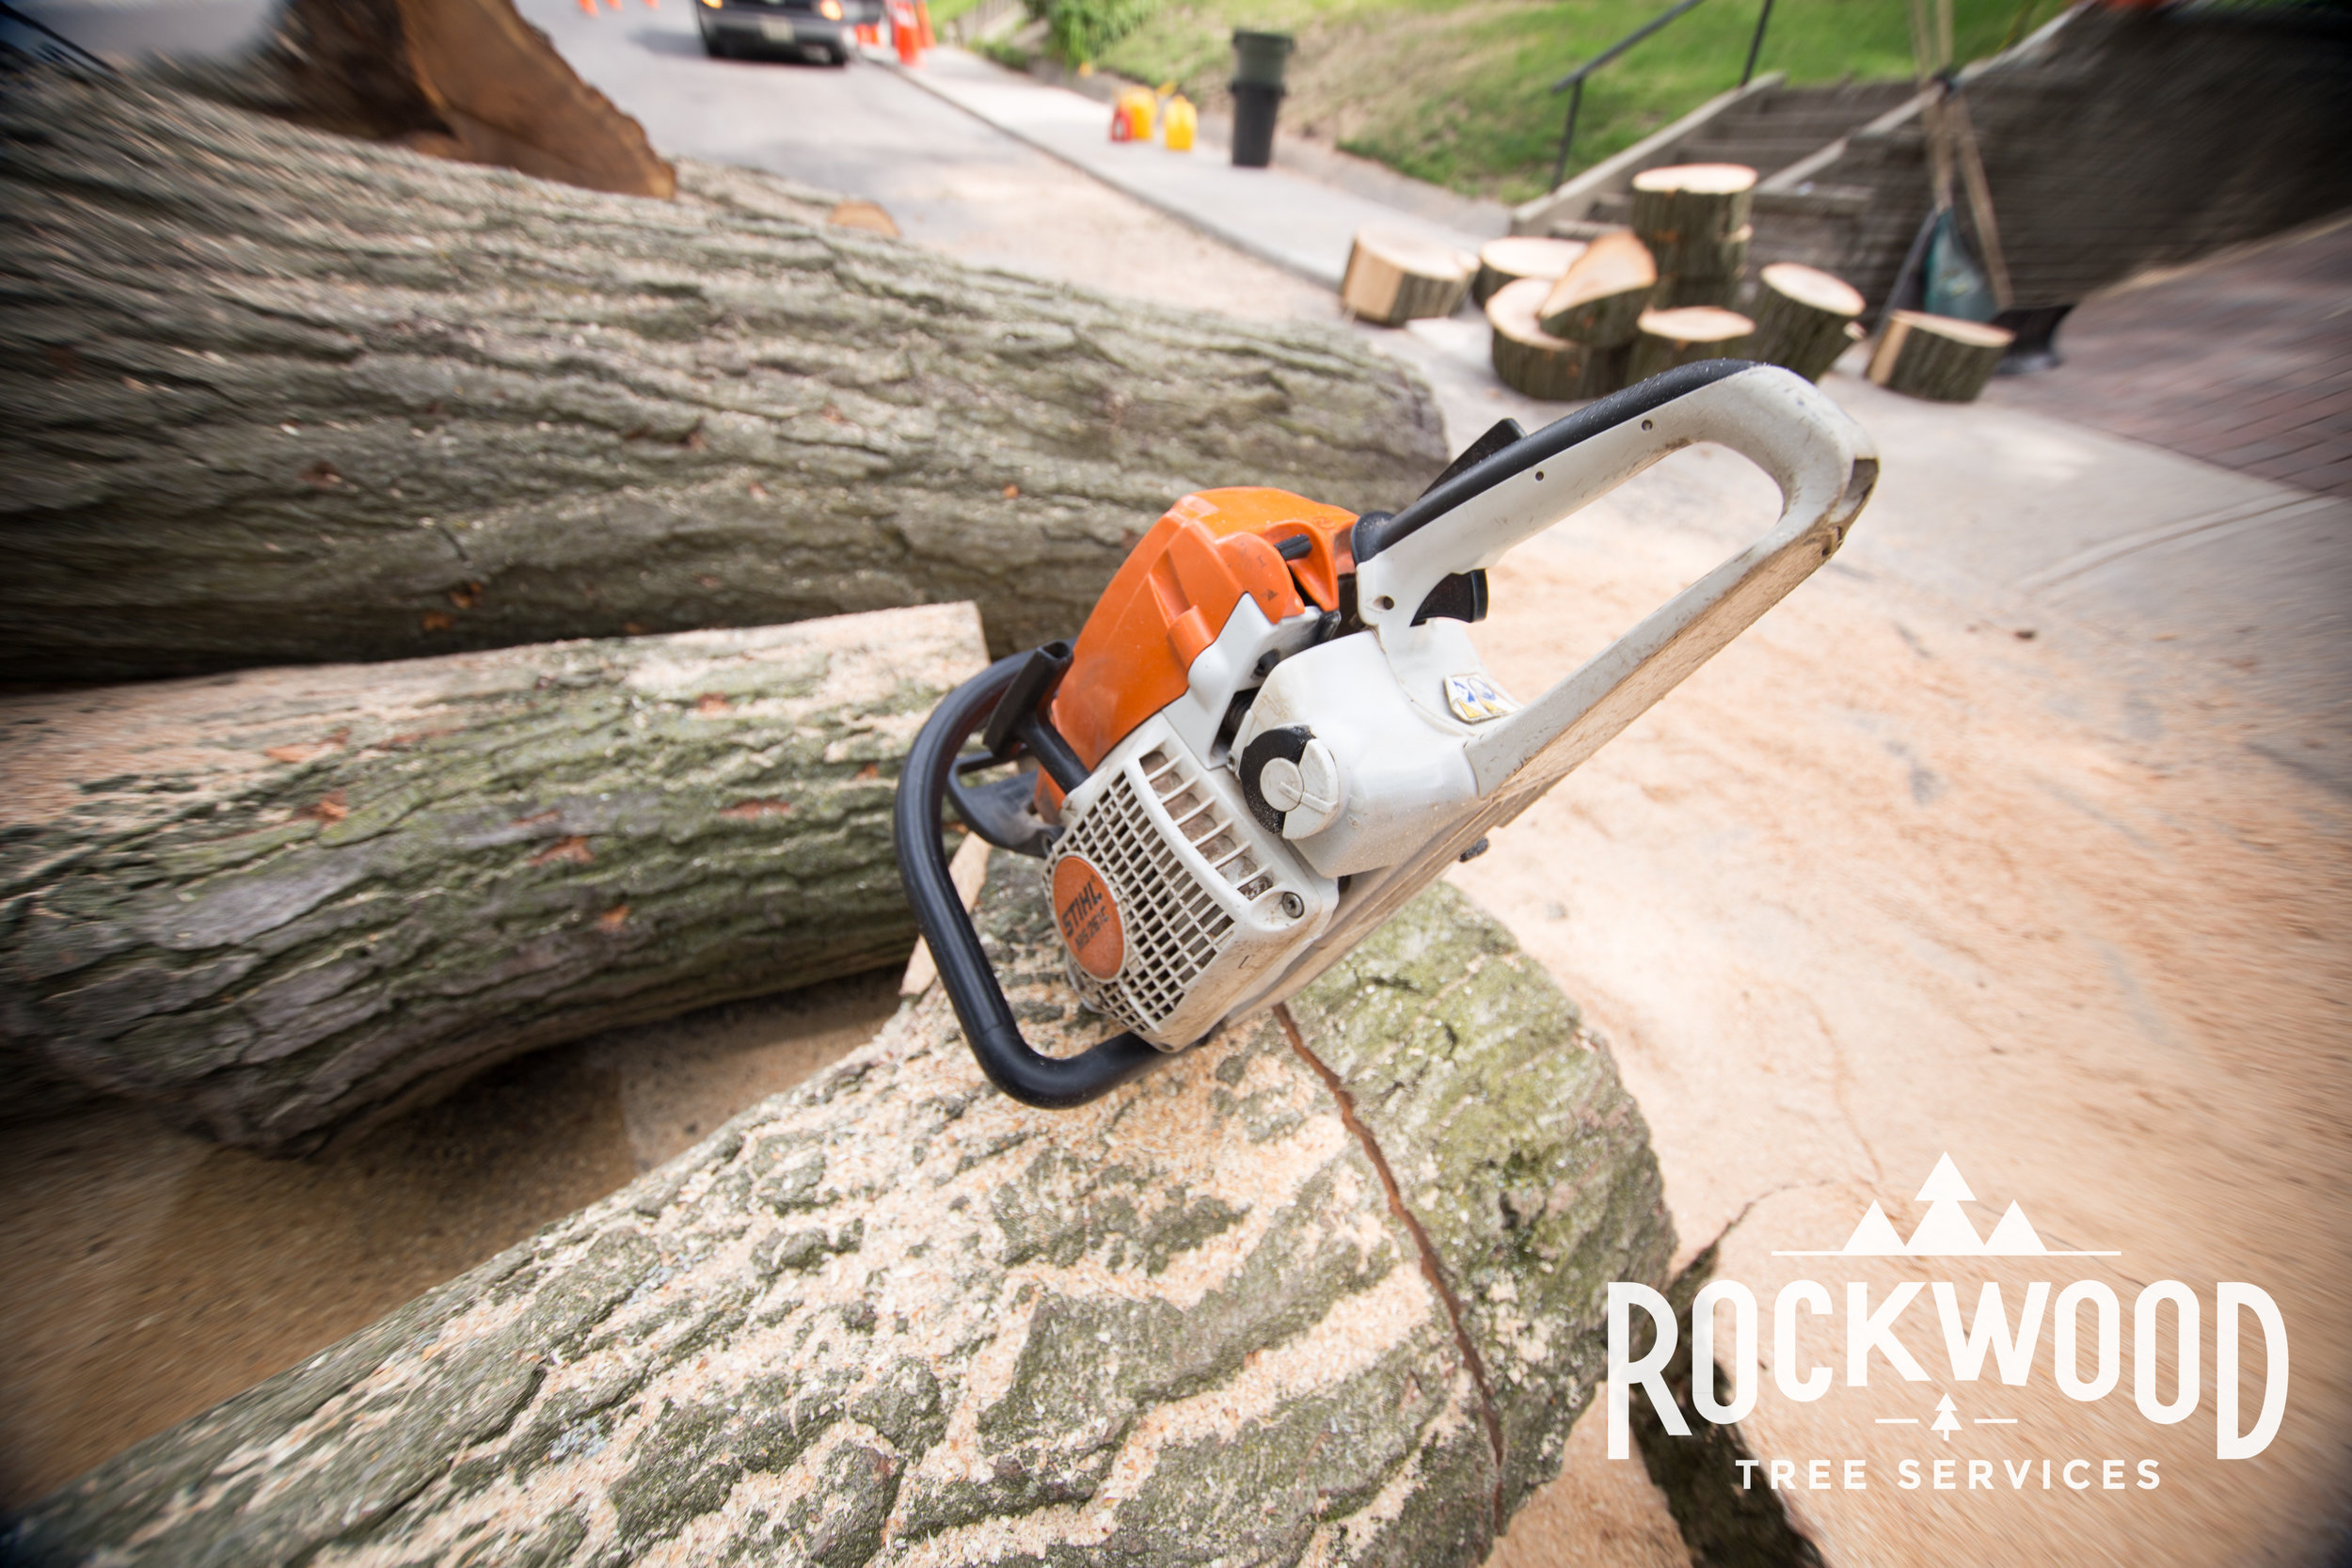 Dylan and the guys at Rockwood Tree Service did an excellent job! Highly recommended, very professional and all around a pleasure to have around.  -Robert L.2/17/2016